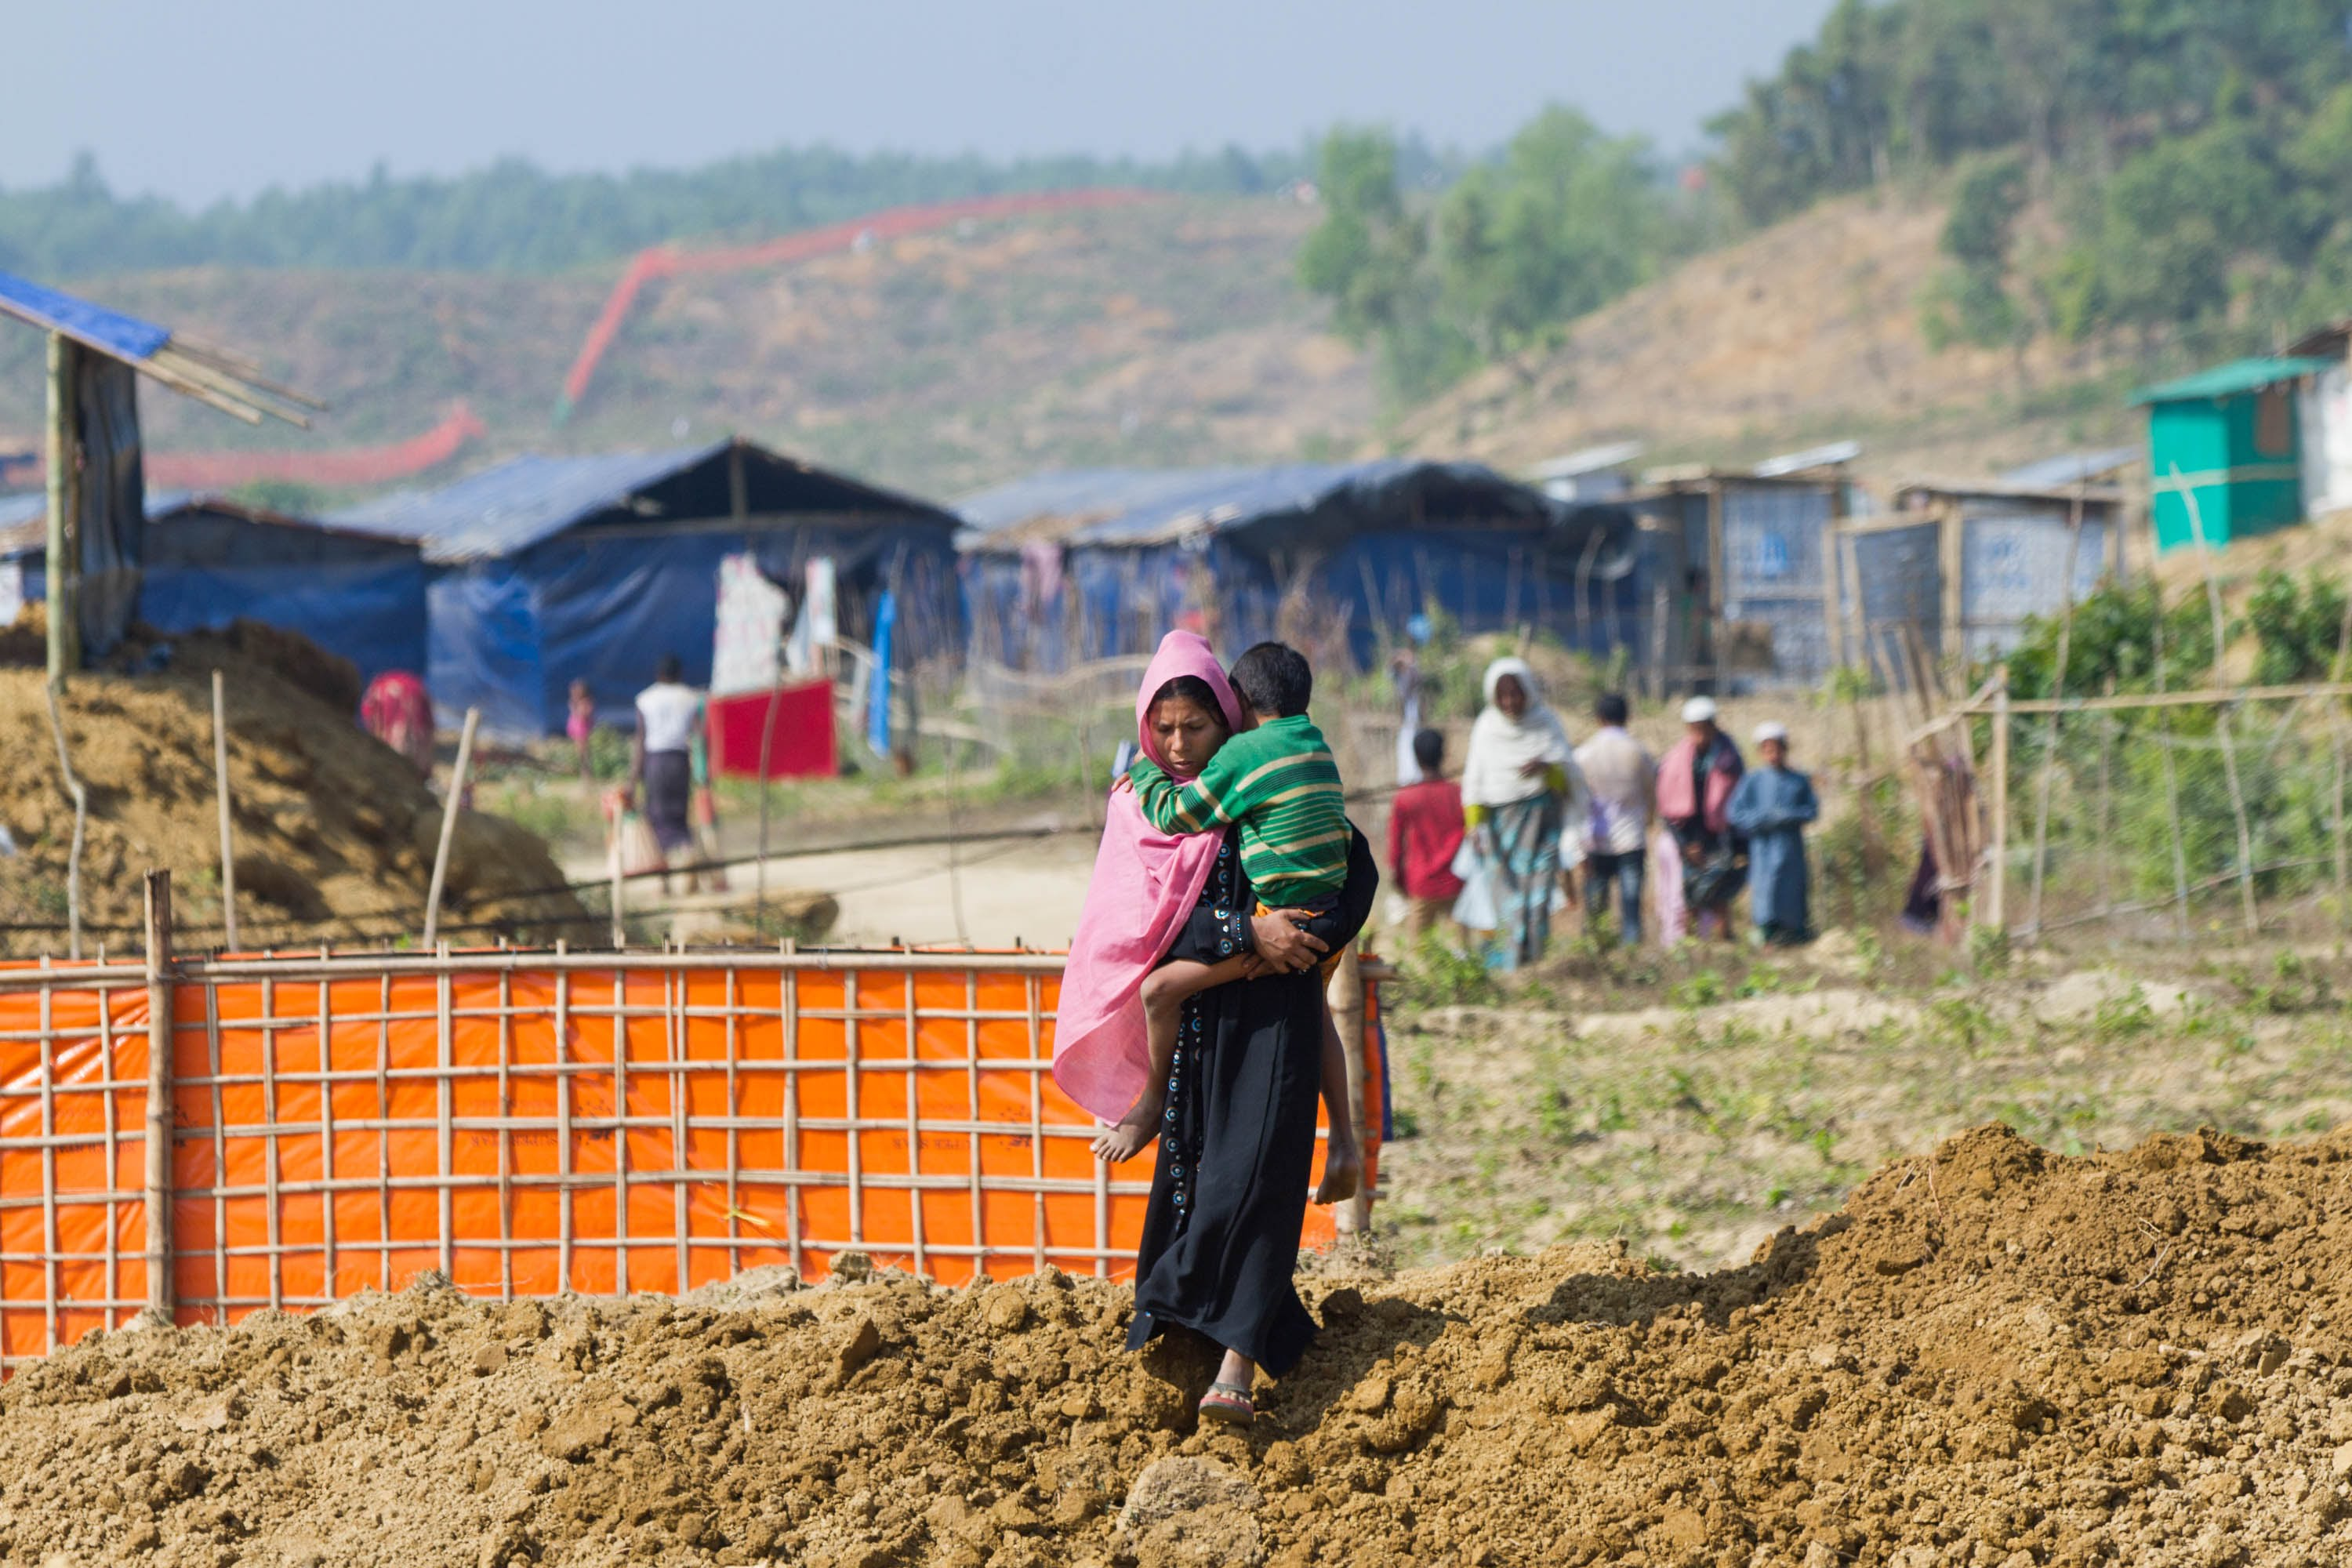 A Rohingya woman and her child walk towards Hope Field Hospital For Women in Madhuchara camp in Cox's Bazar, Bangladesh.  (Photo by Rajib Dhar for Direct Relief)